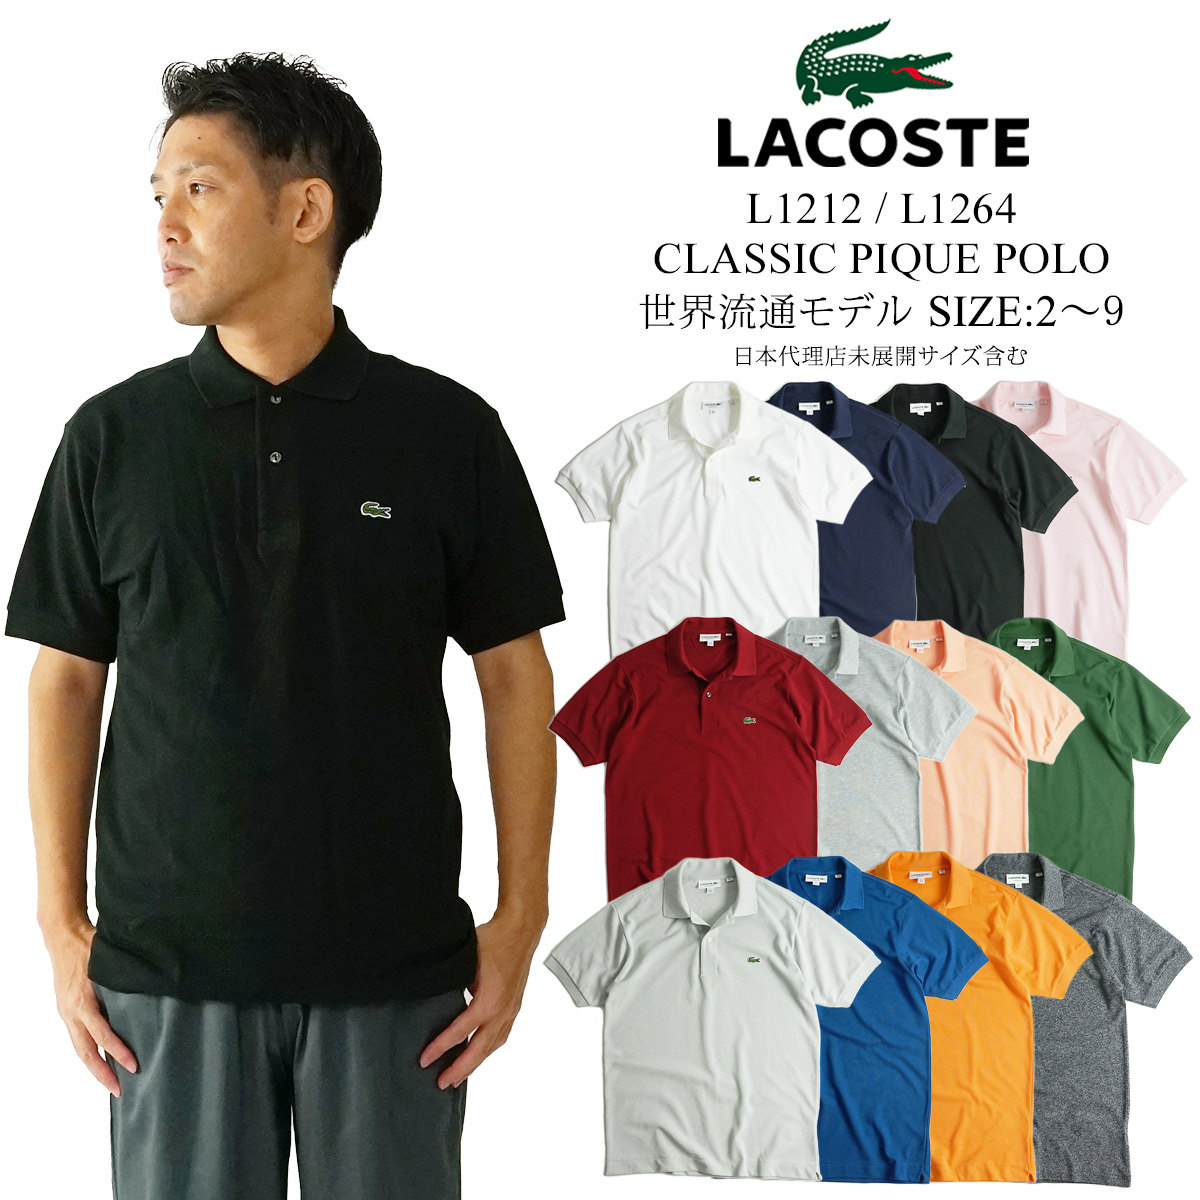 1d4fe8118318 Lacoste LACOSTE L1212 L1264 short sleeves polo shirt fawn world circulation  model BIG SIZE □ bandana present □ (big size Classic Pique Polo)